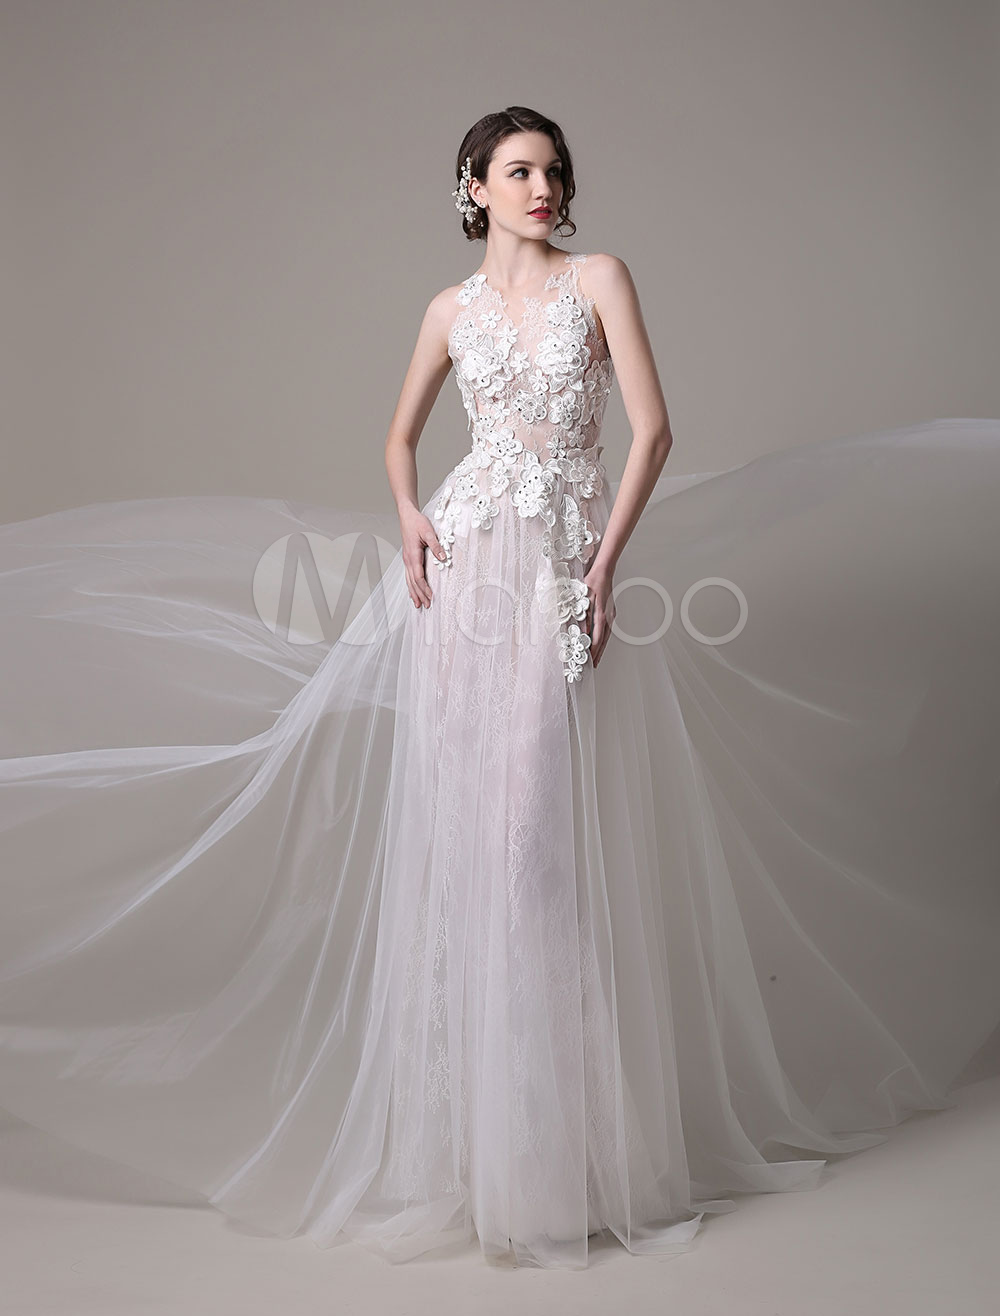 Y Wedding Dress In Lace And Tulle With Sheer Illusion Bodice Fl Lique Milanoo